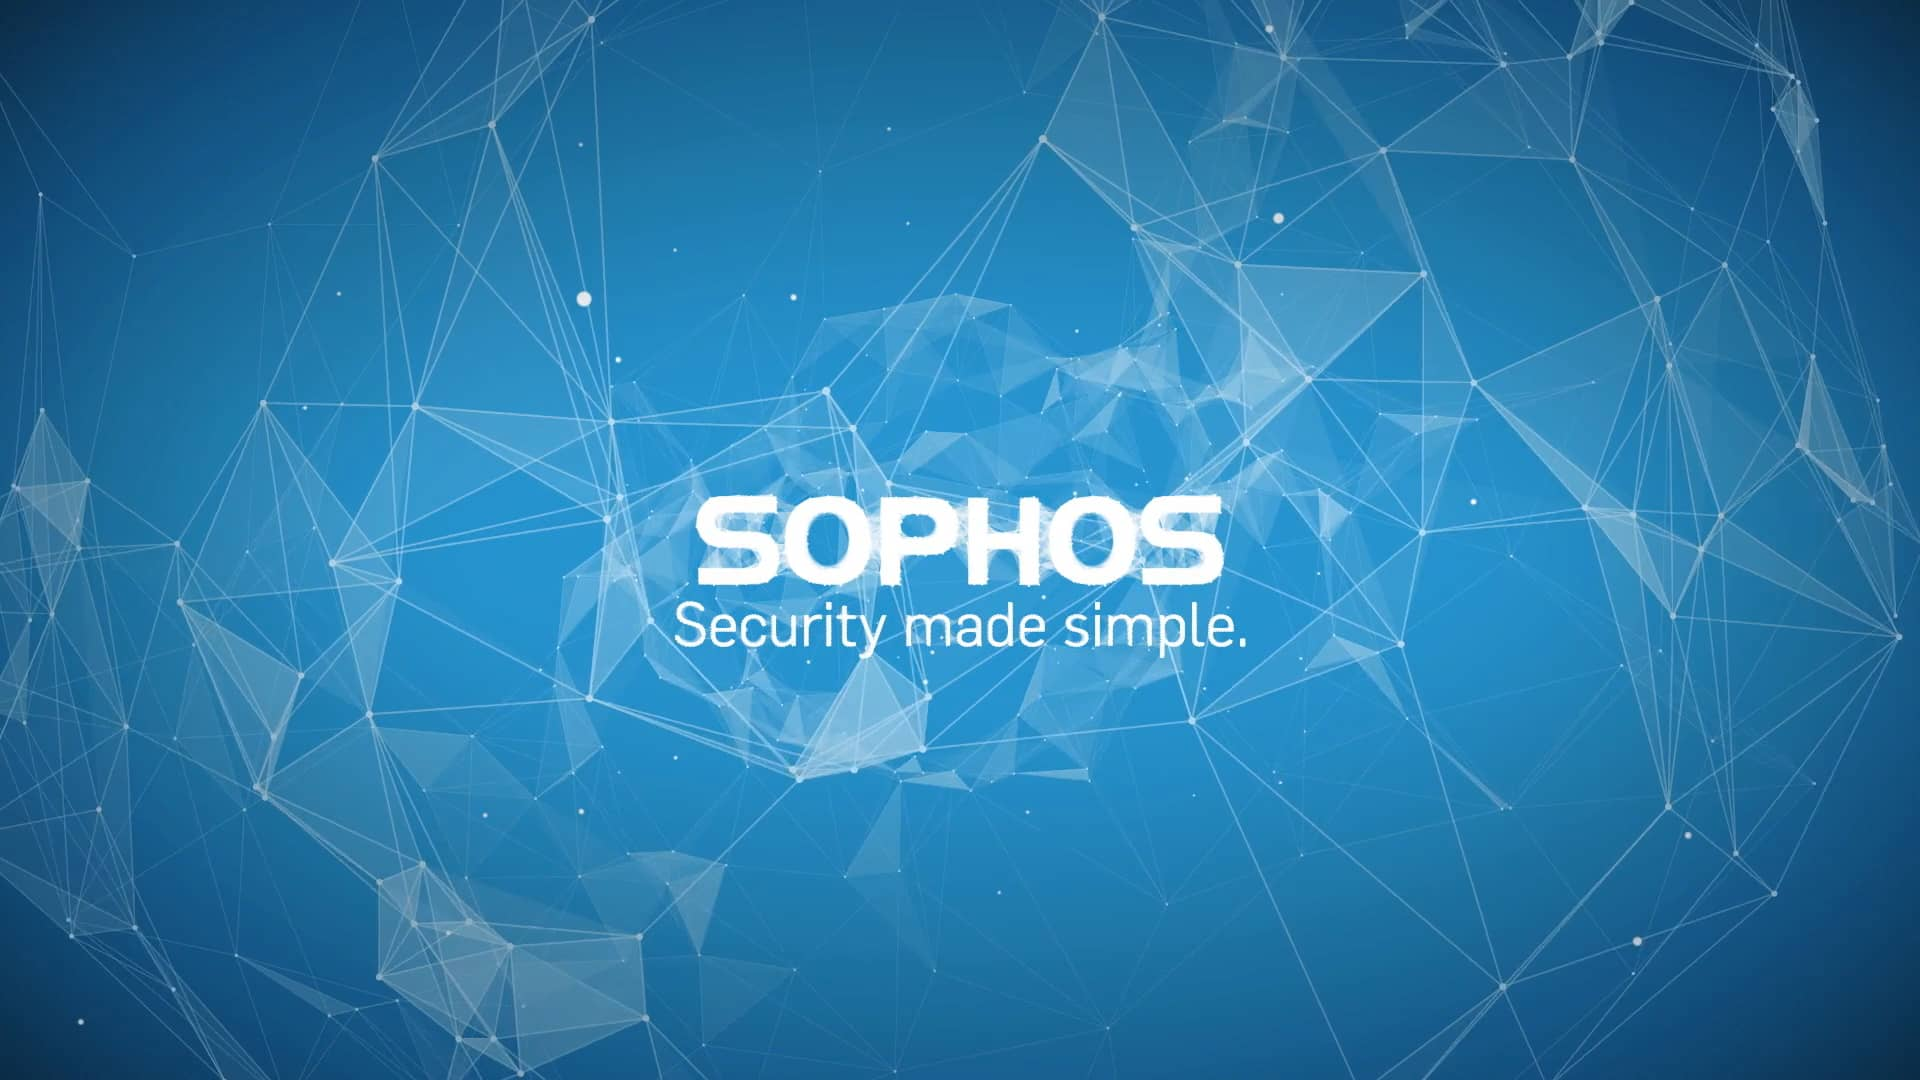 Sophos Security Training Sophos Targets Small Businesses In Africa With Special Partner